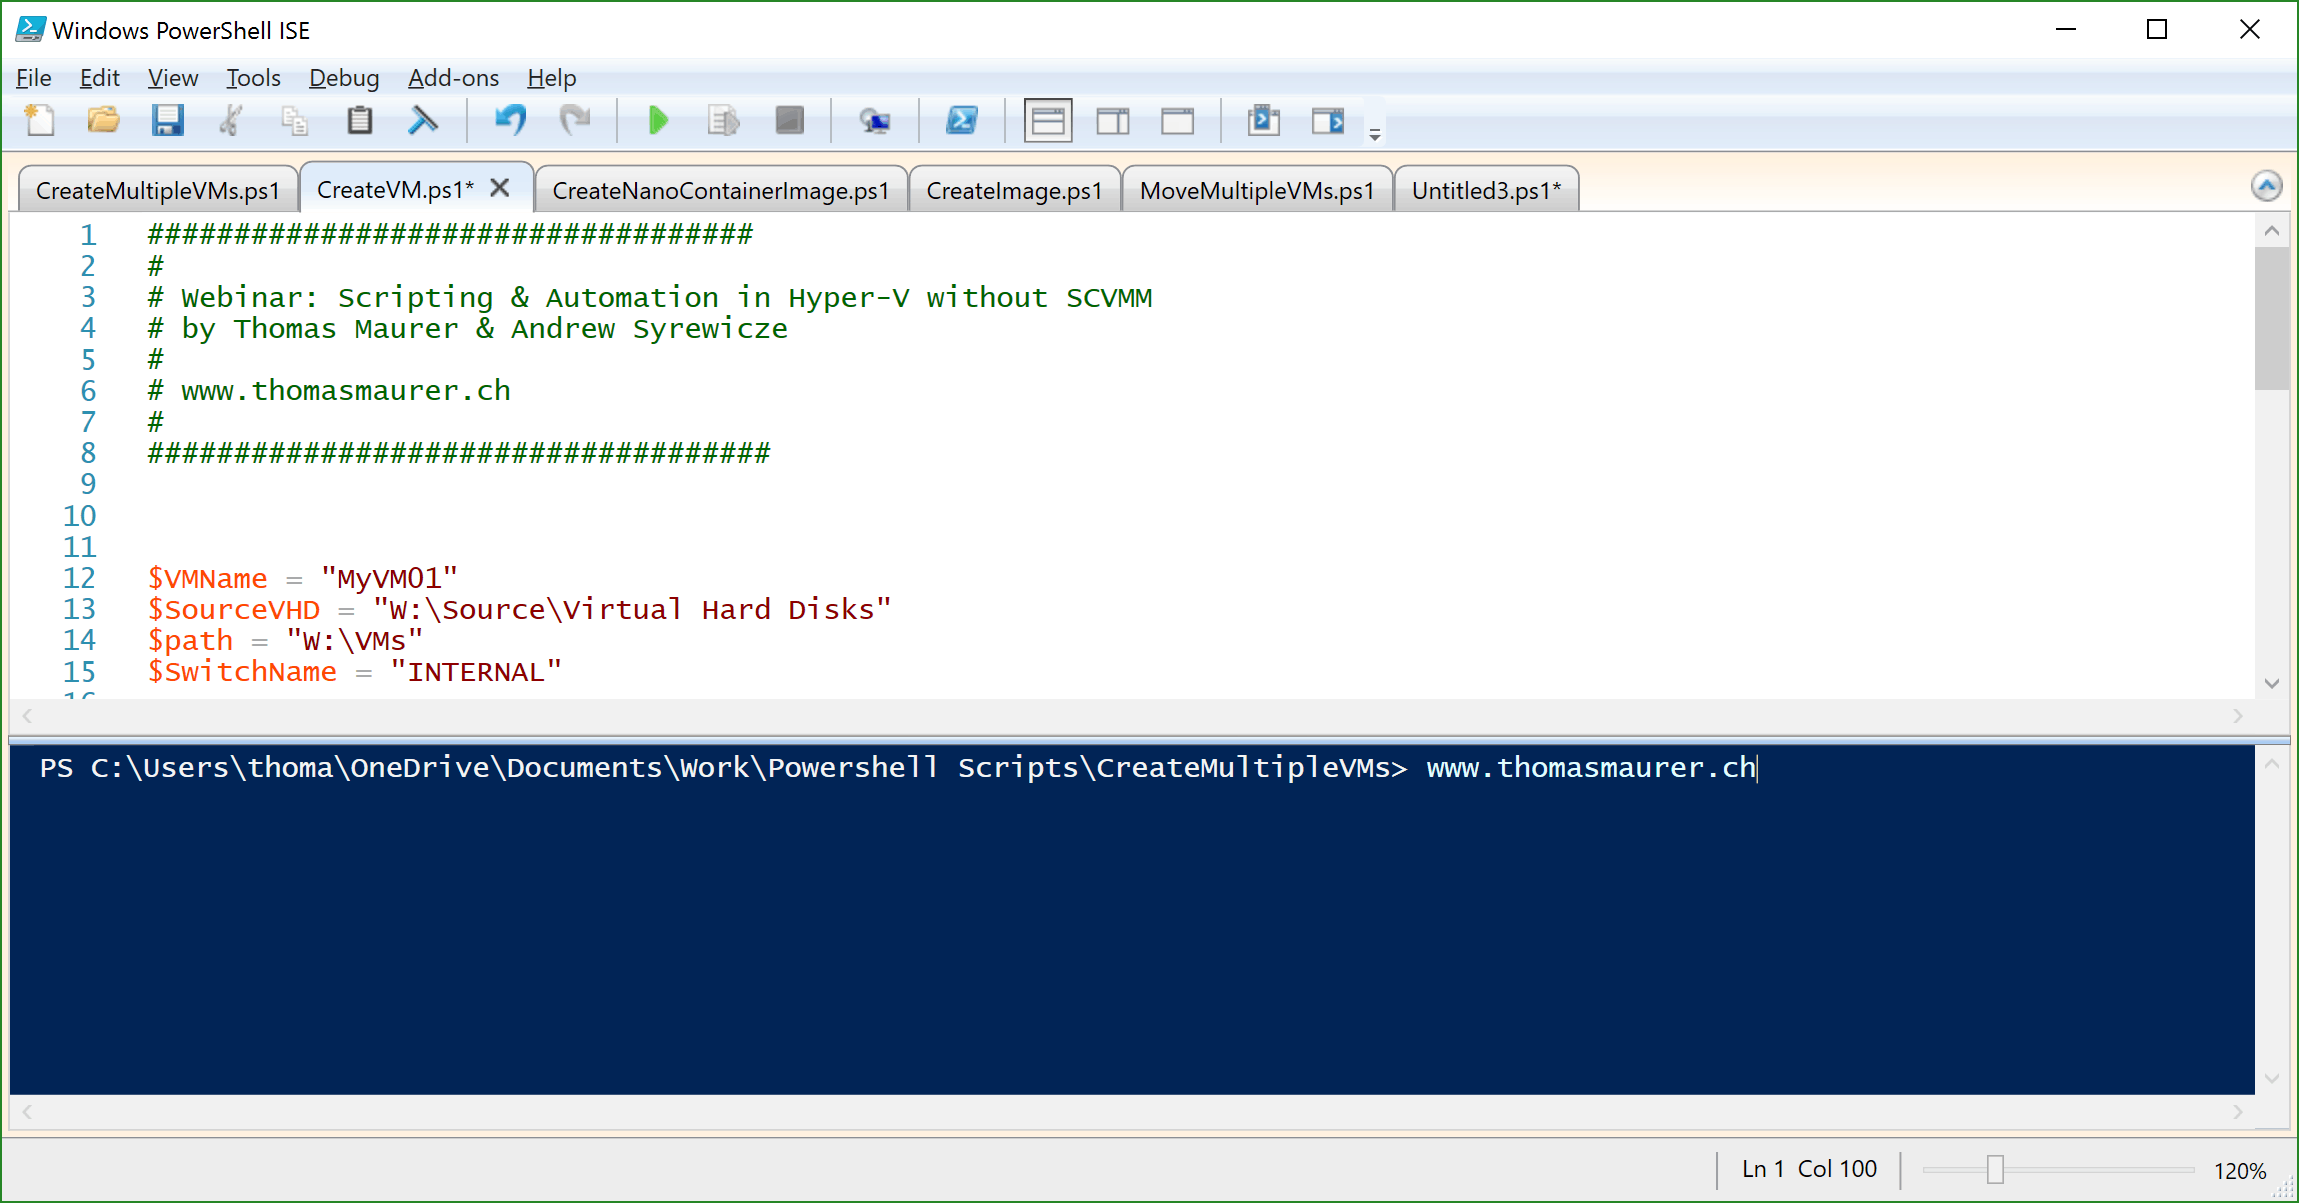 Webinar PowerShell Scripting and Automation for Hyper-V